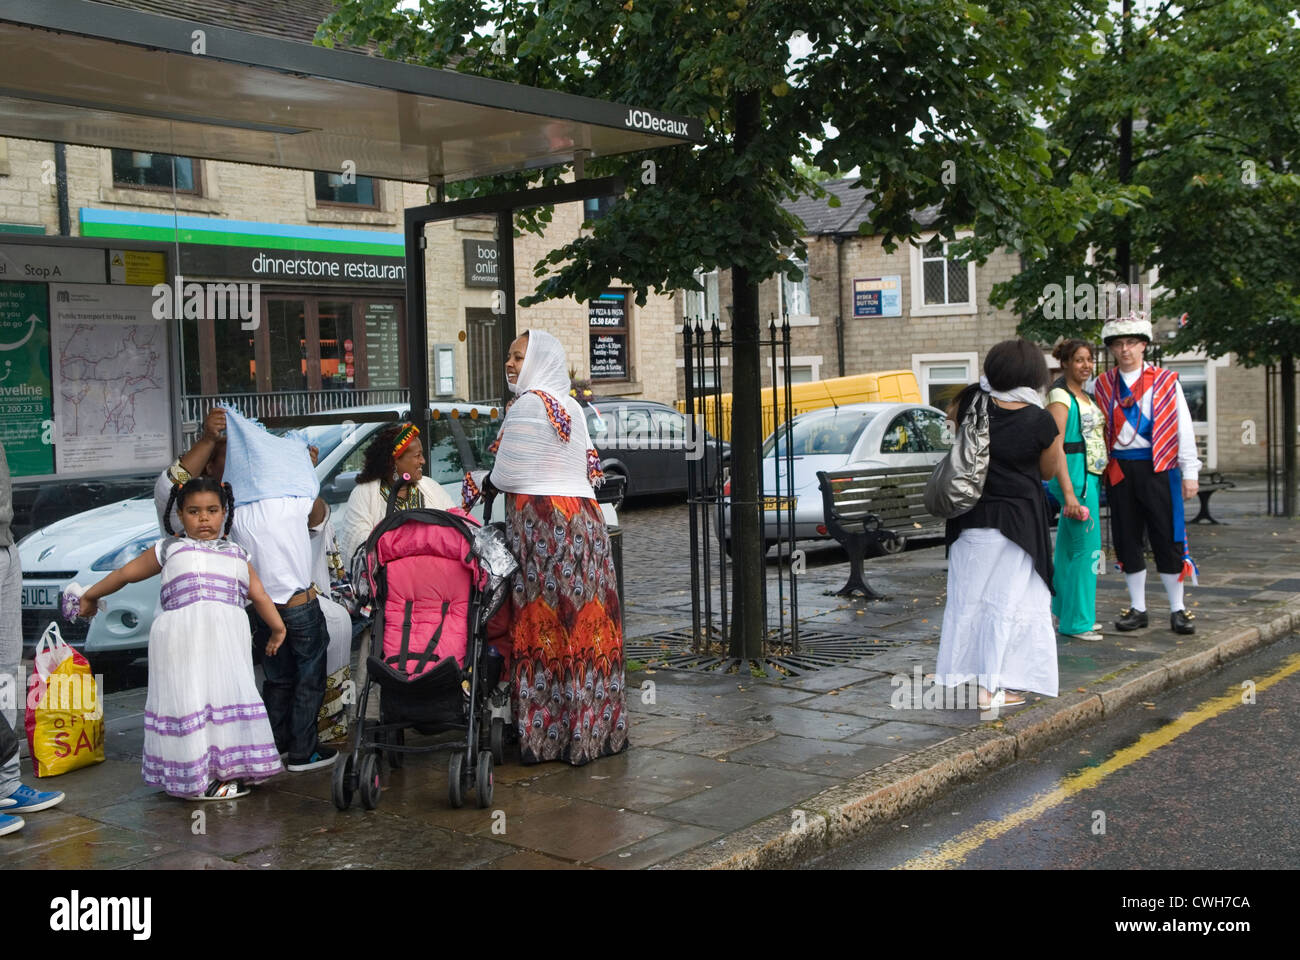 Immigrant family in UK meeting a Morris dancers and take a photo HOMER SYKES - Stock Image